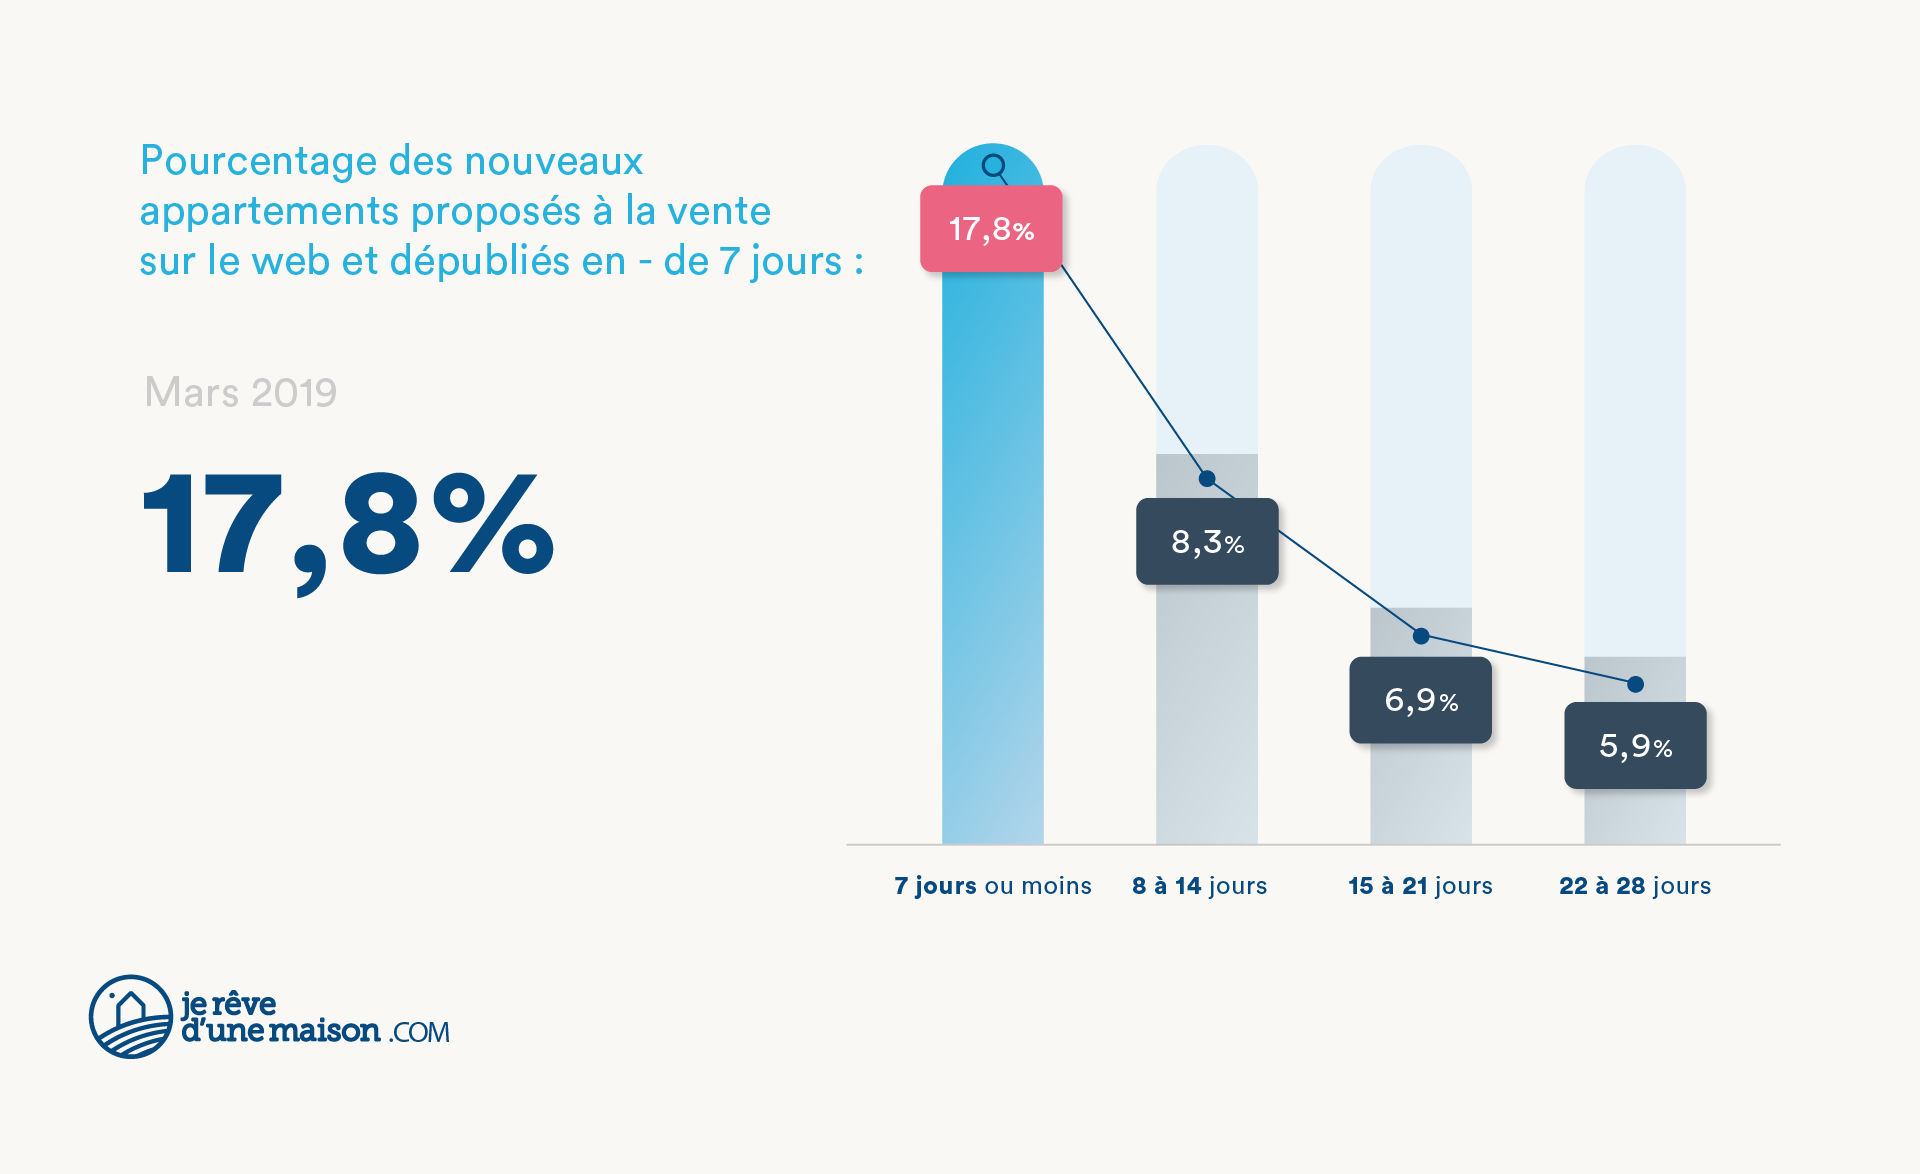 Vitesse de vente des appartements à Paris - mars 2019